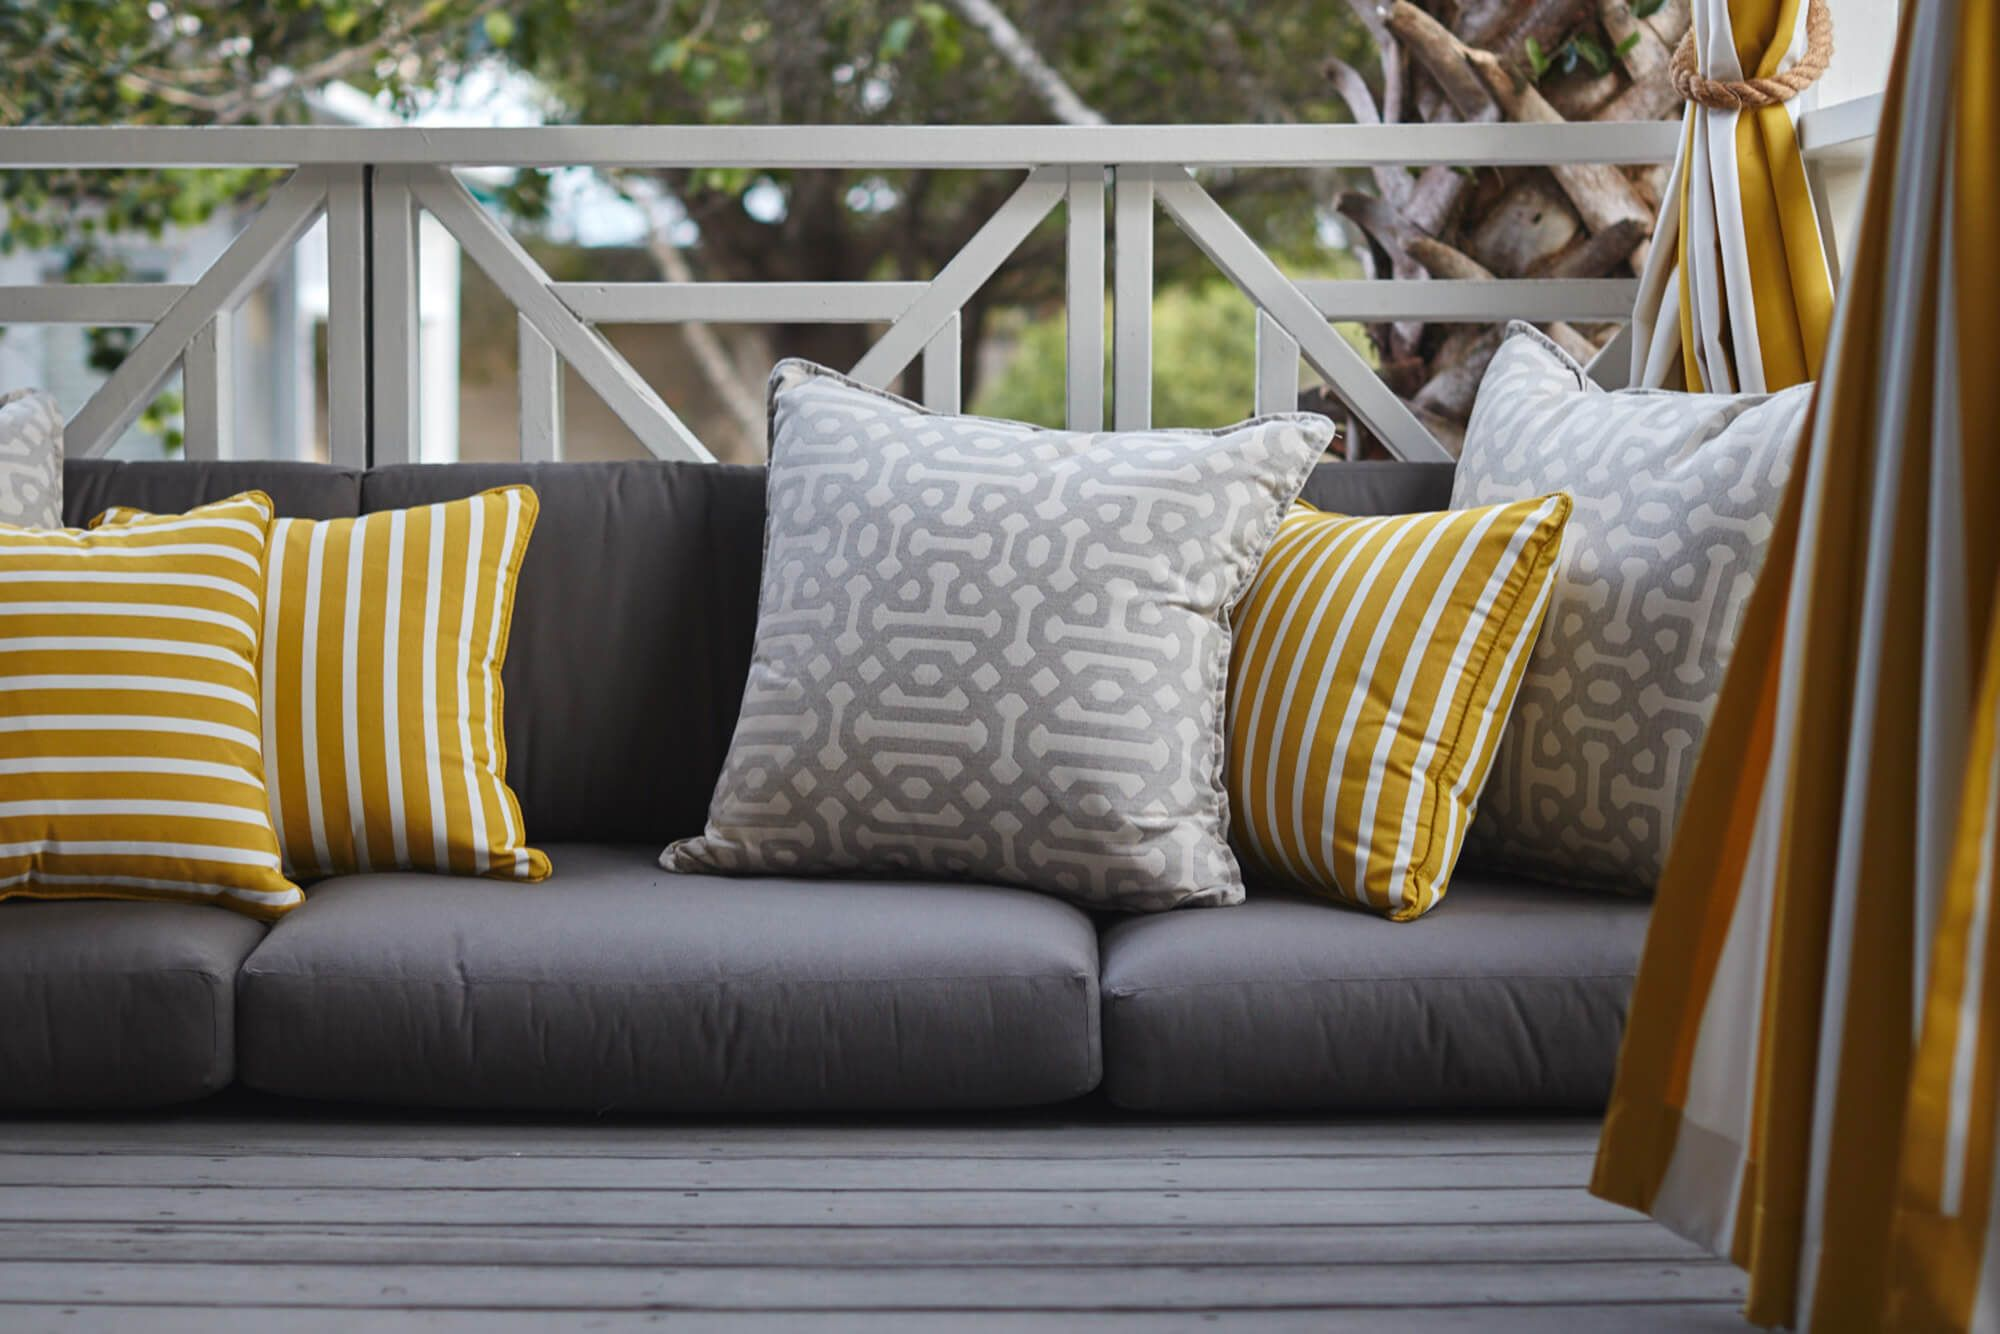 Sofa Repair Jakarta Outdoor Cushions With Yellow Accent Pillows Deck Pinterest